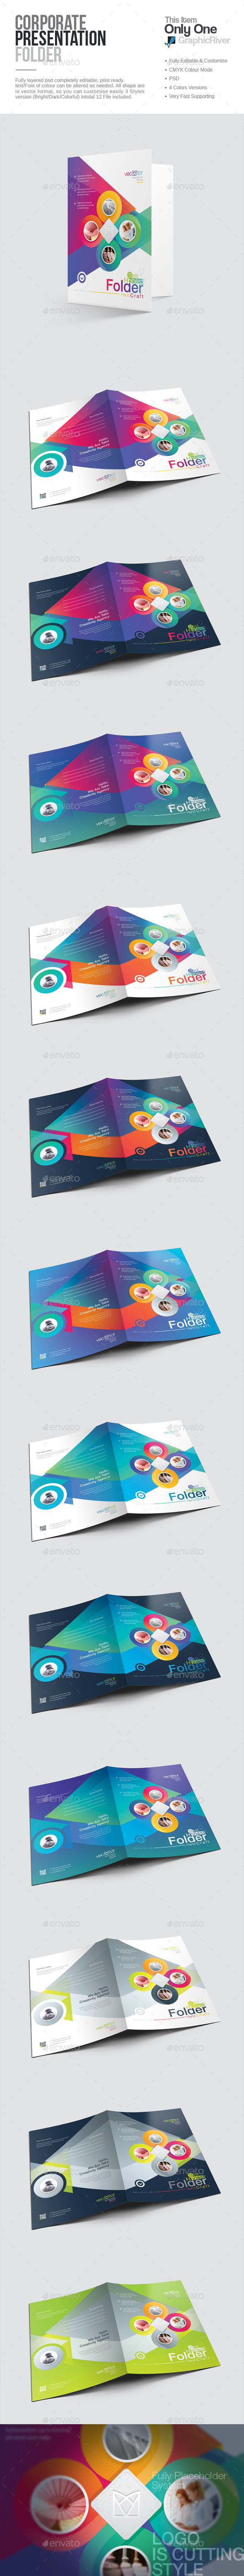 GraphicRiver Presentation Folder 20829845